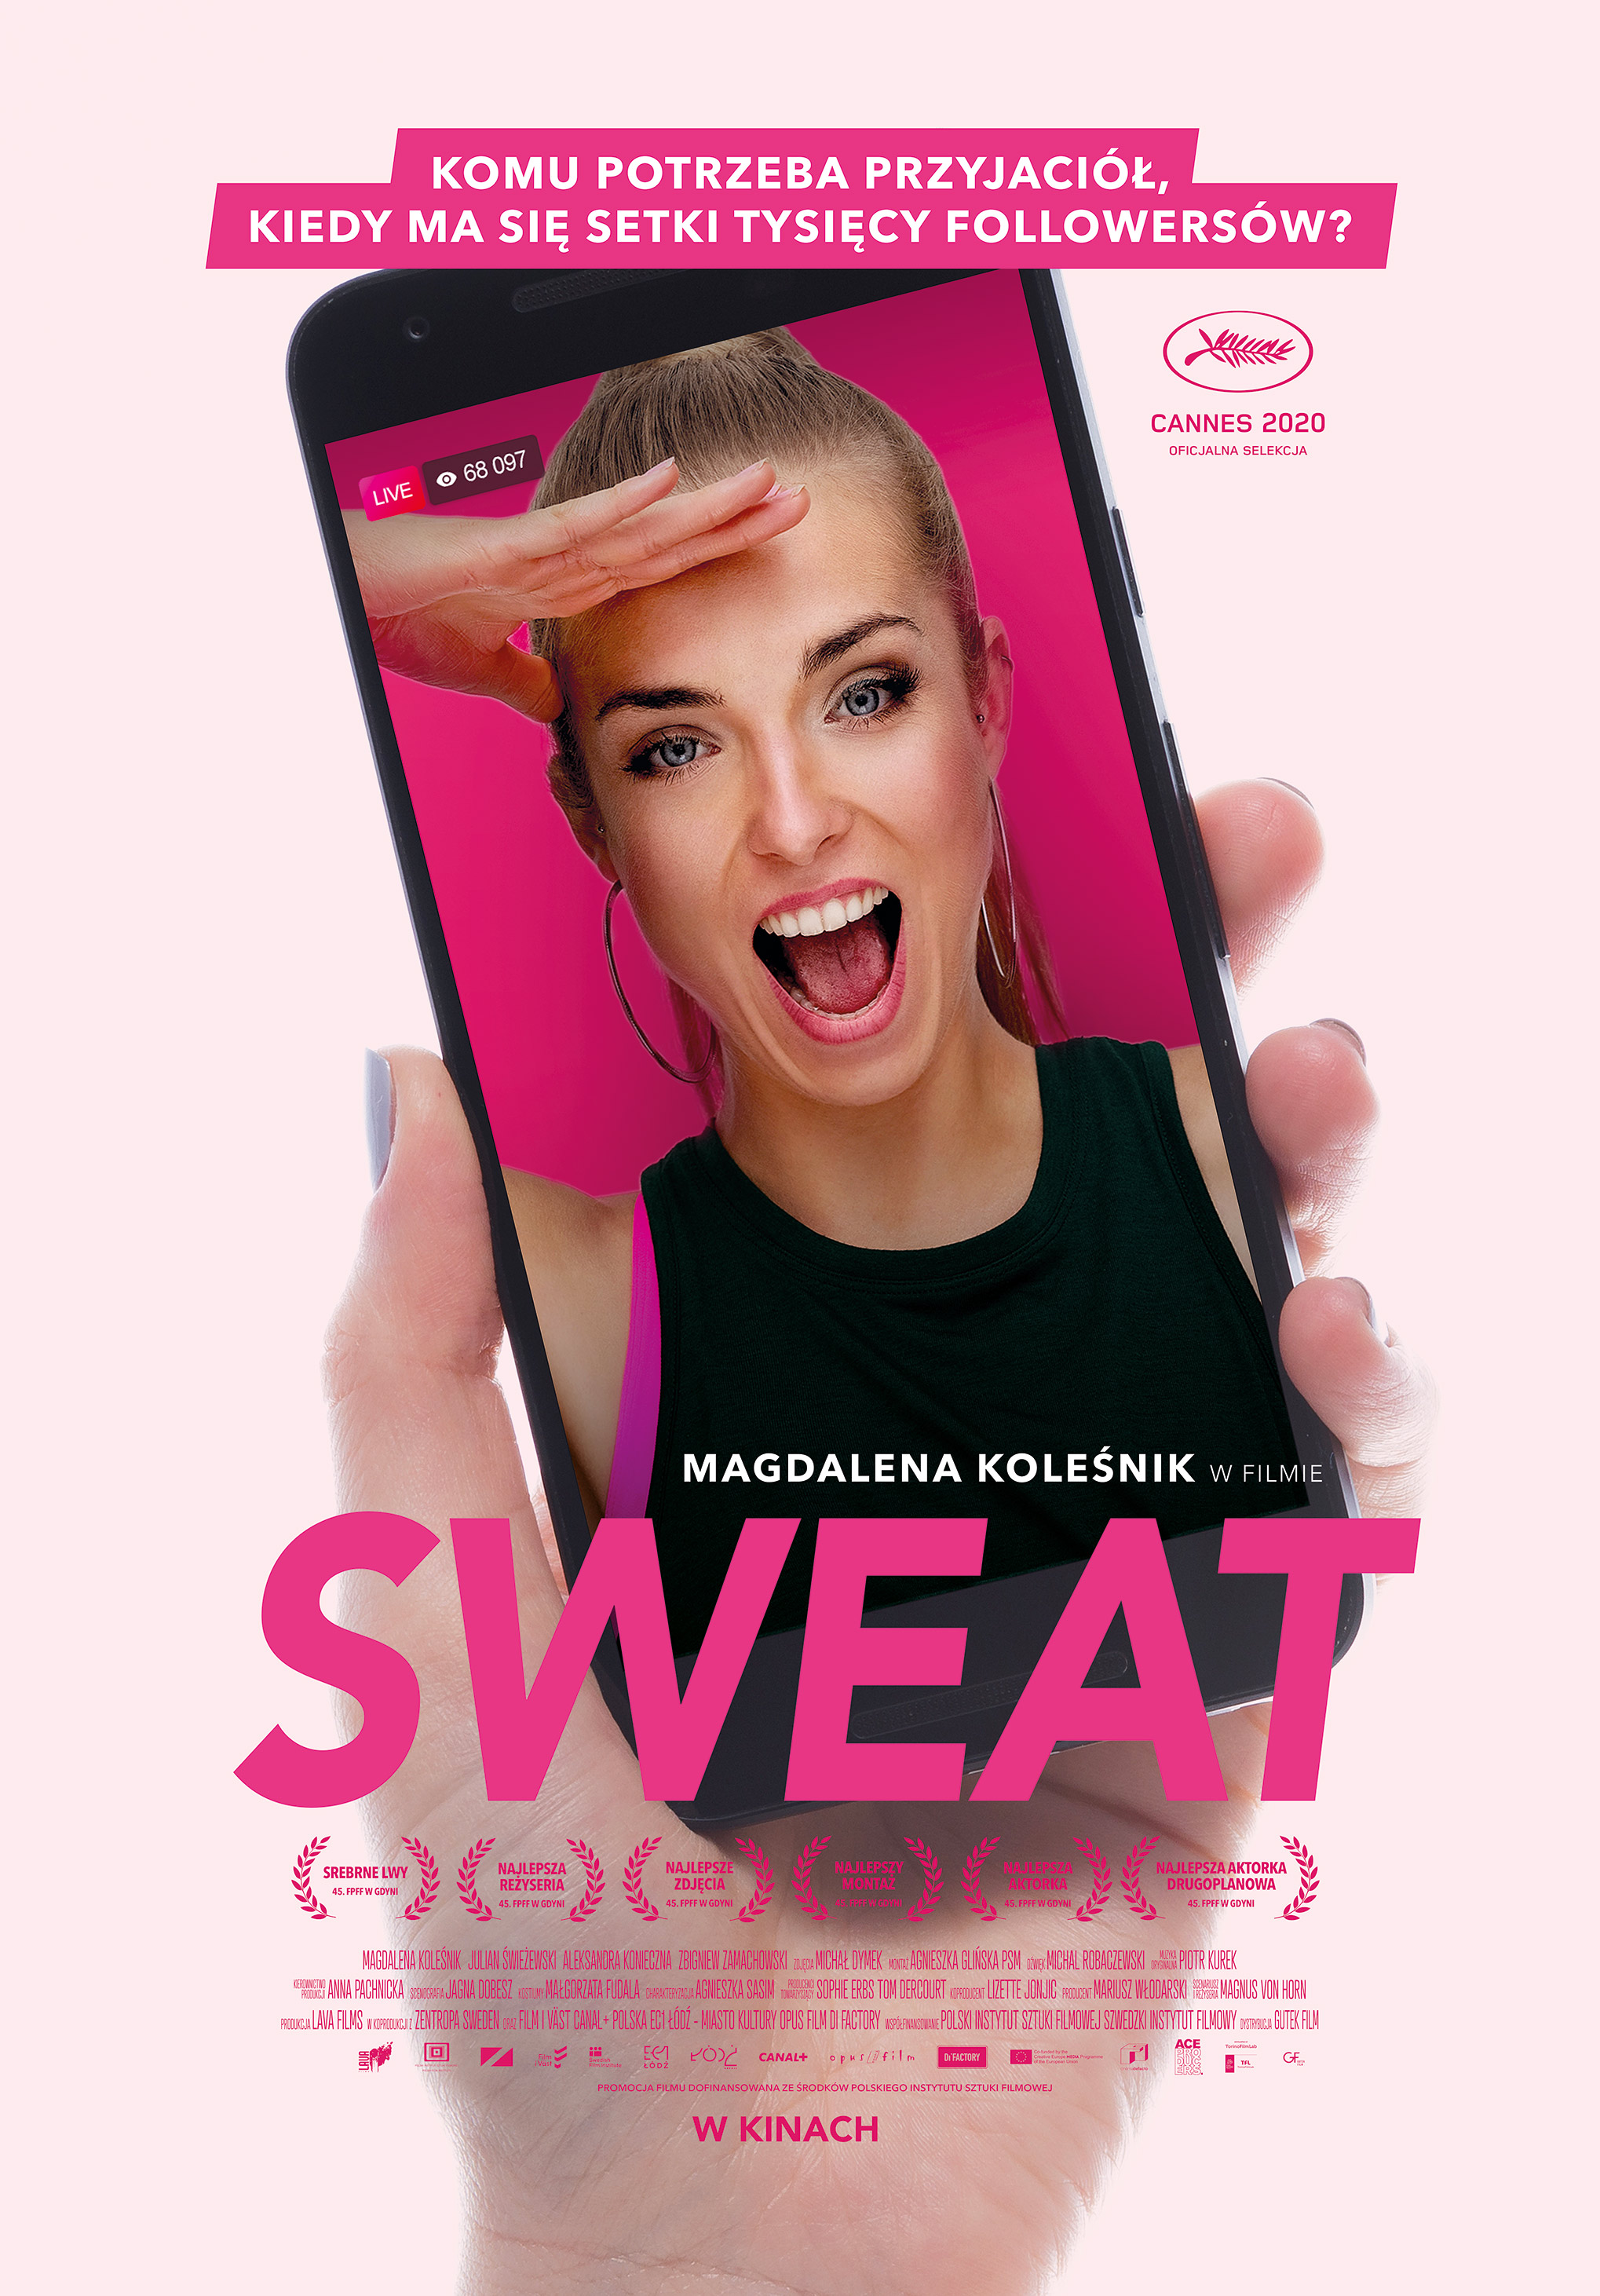 sweat-plakatpl-680x980-lq_1.jpg